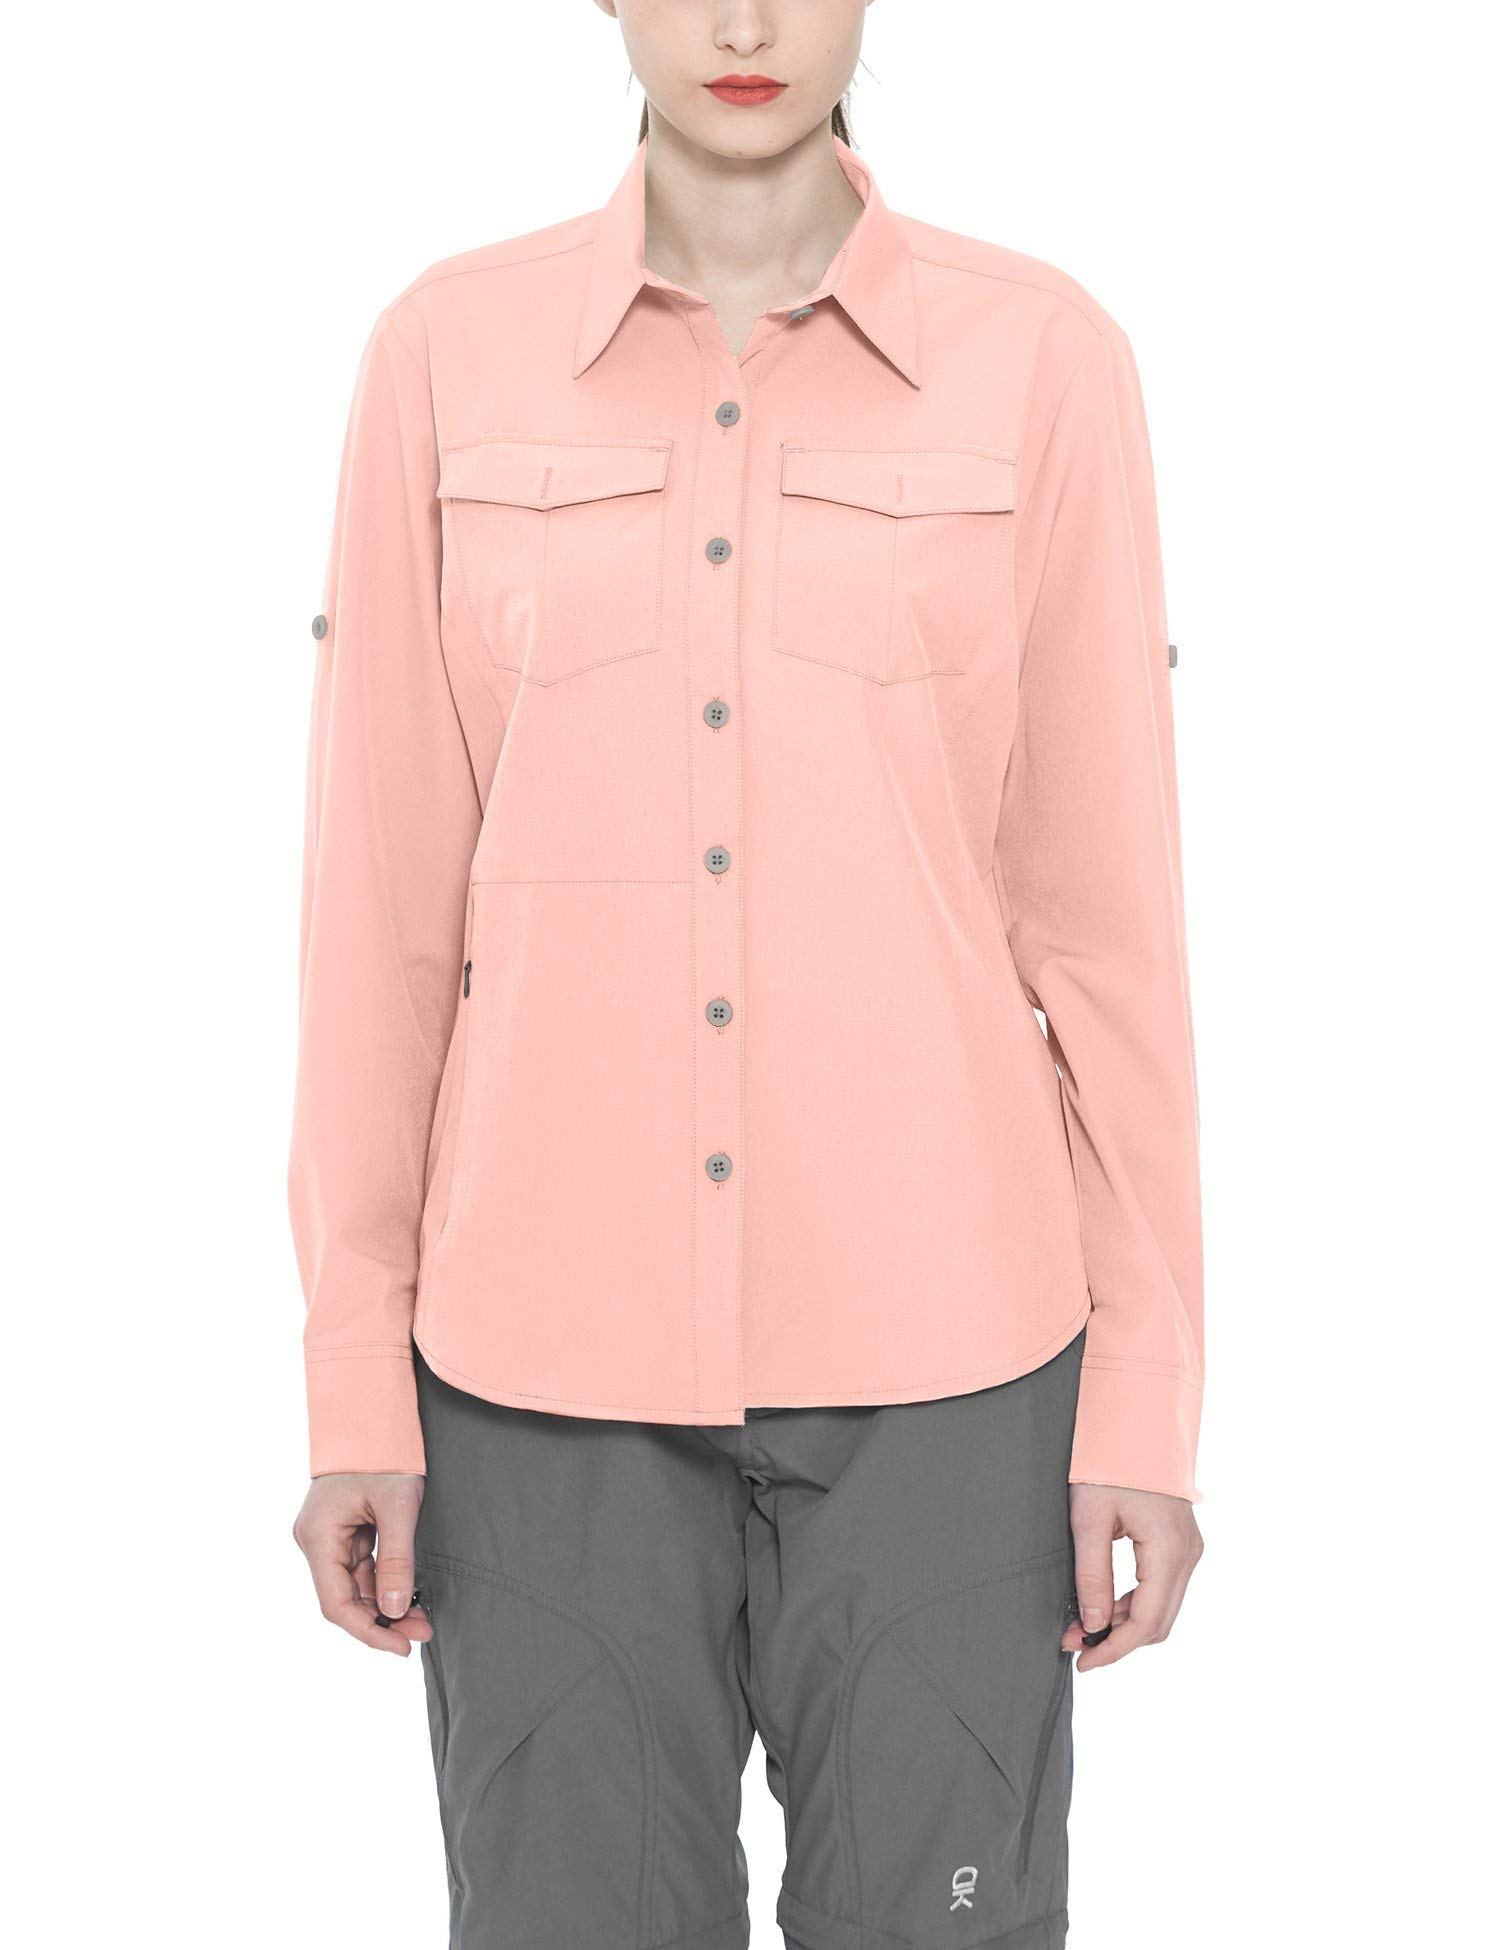 Little Donkey Andy Women's Stretch Quick Dry Water Resistant Outdoor Shirts UPF50+ for Hiking, Travel, Camping Pink Size S by Little Donkey Andy